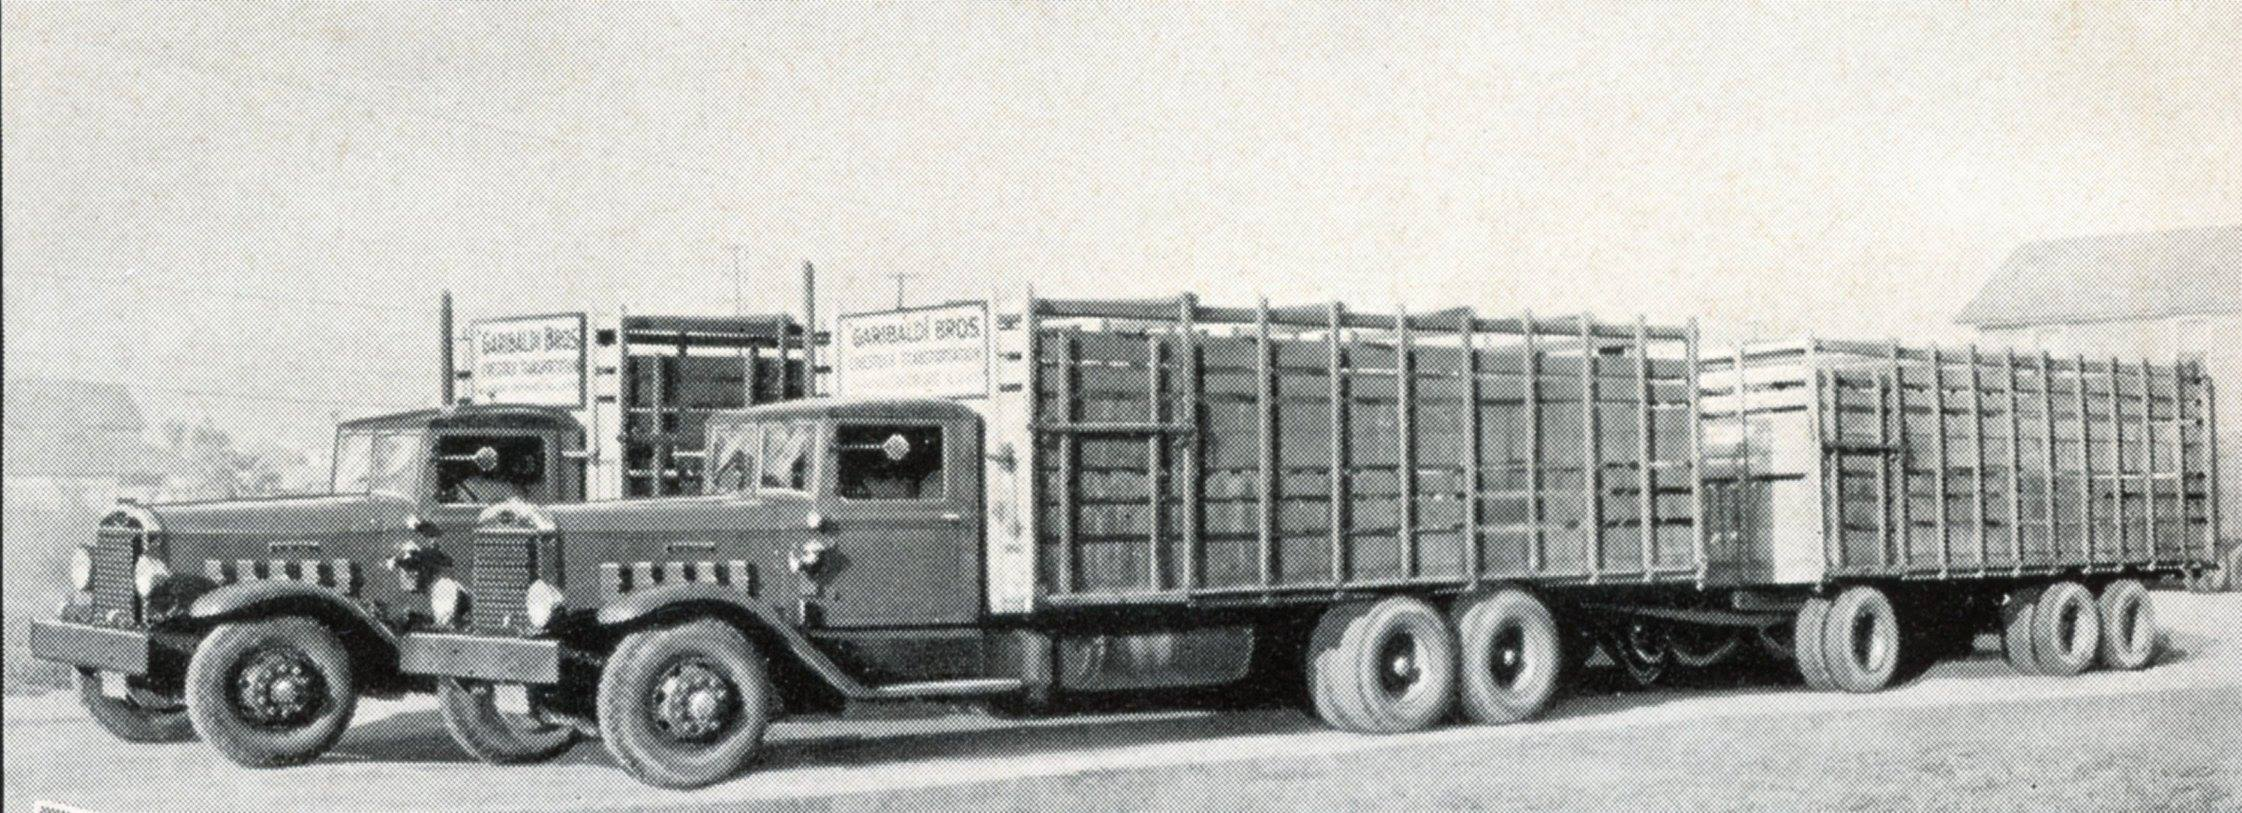 1936-or-1937-Autocar-Diesel-livestock-haulers-in-Southern-California